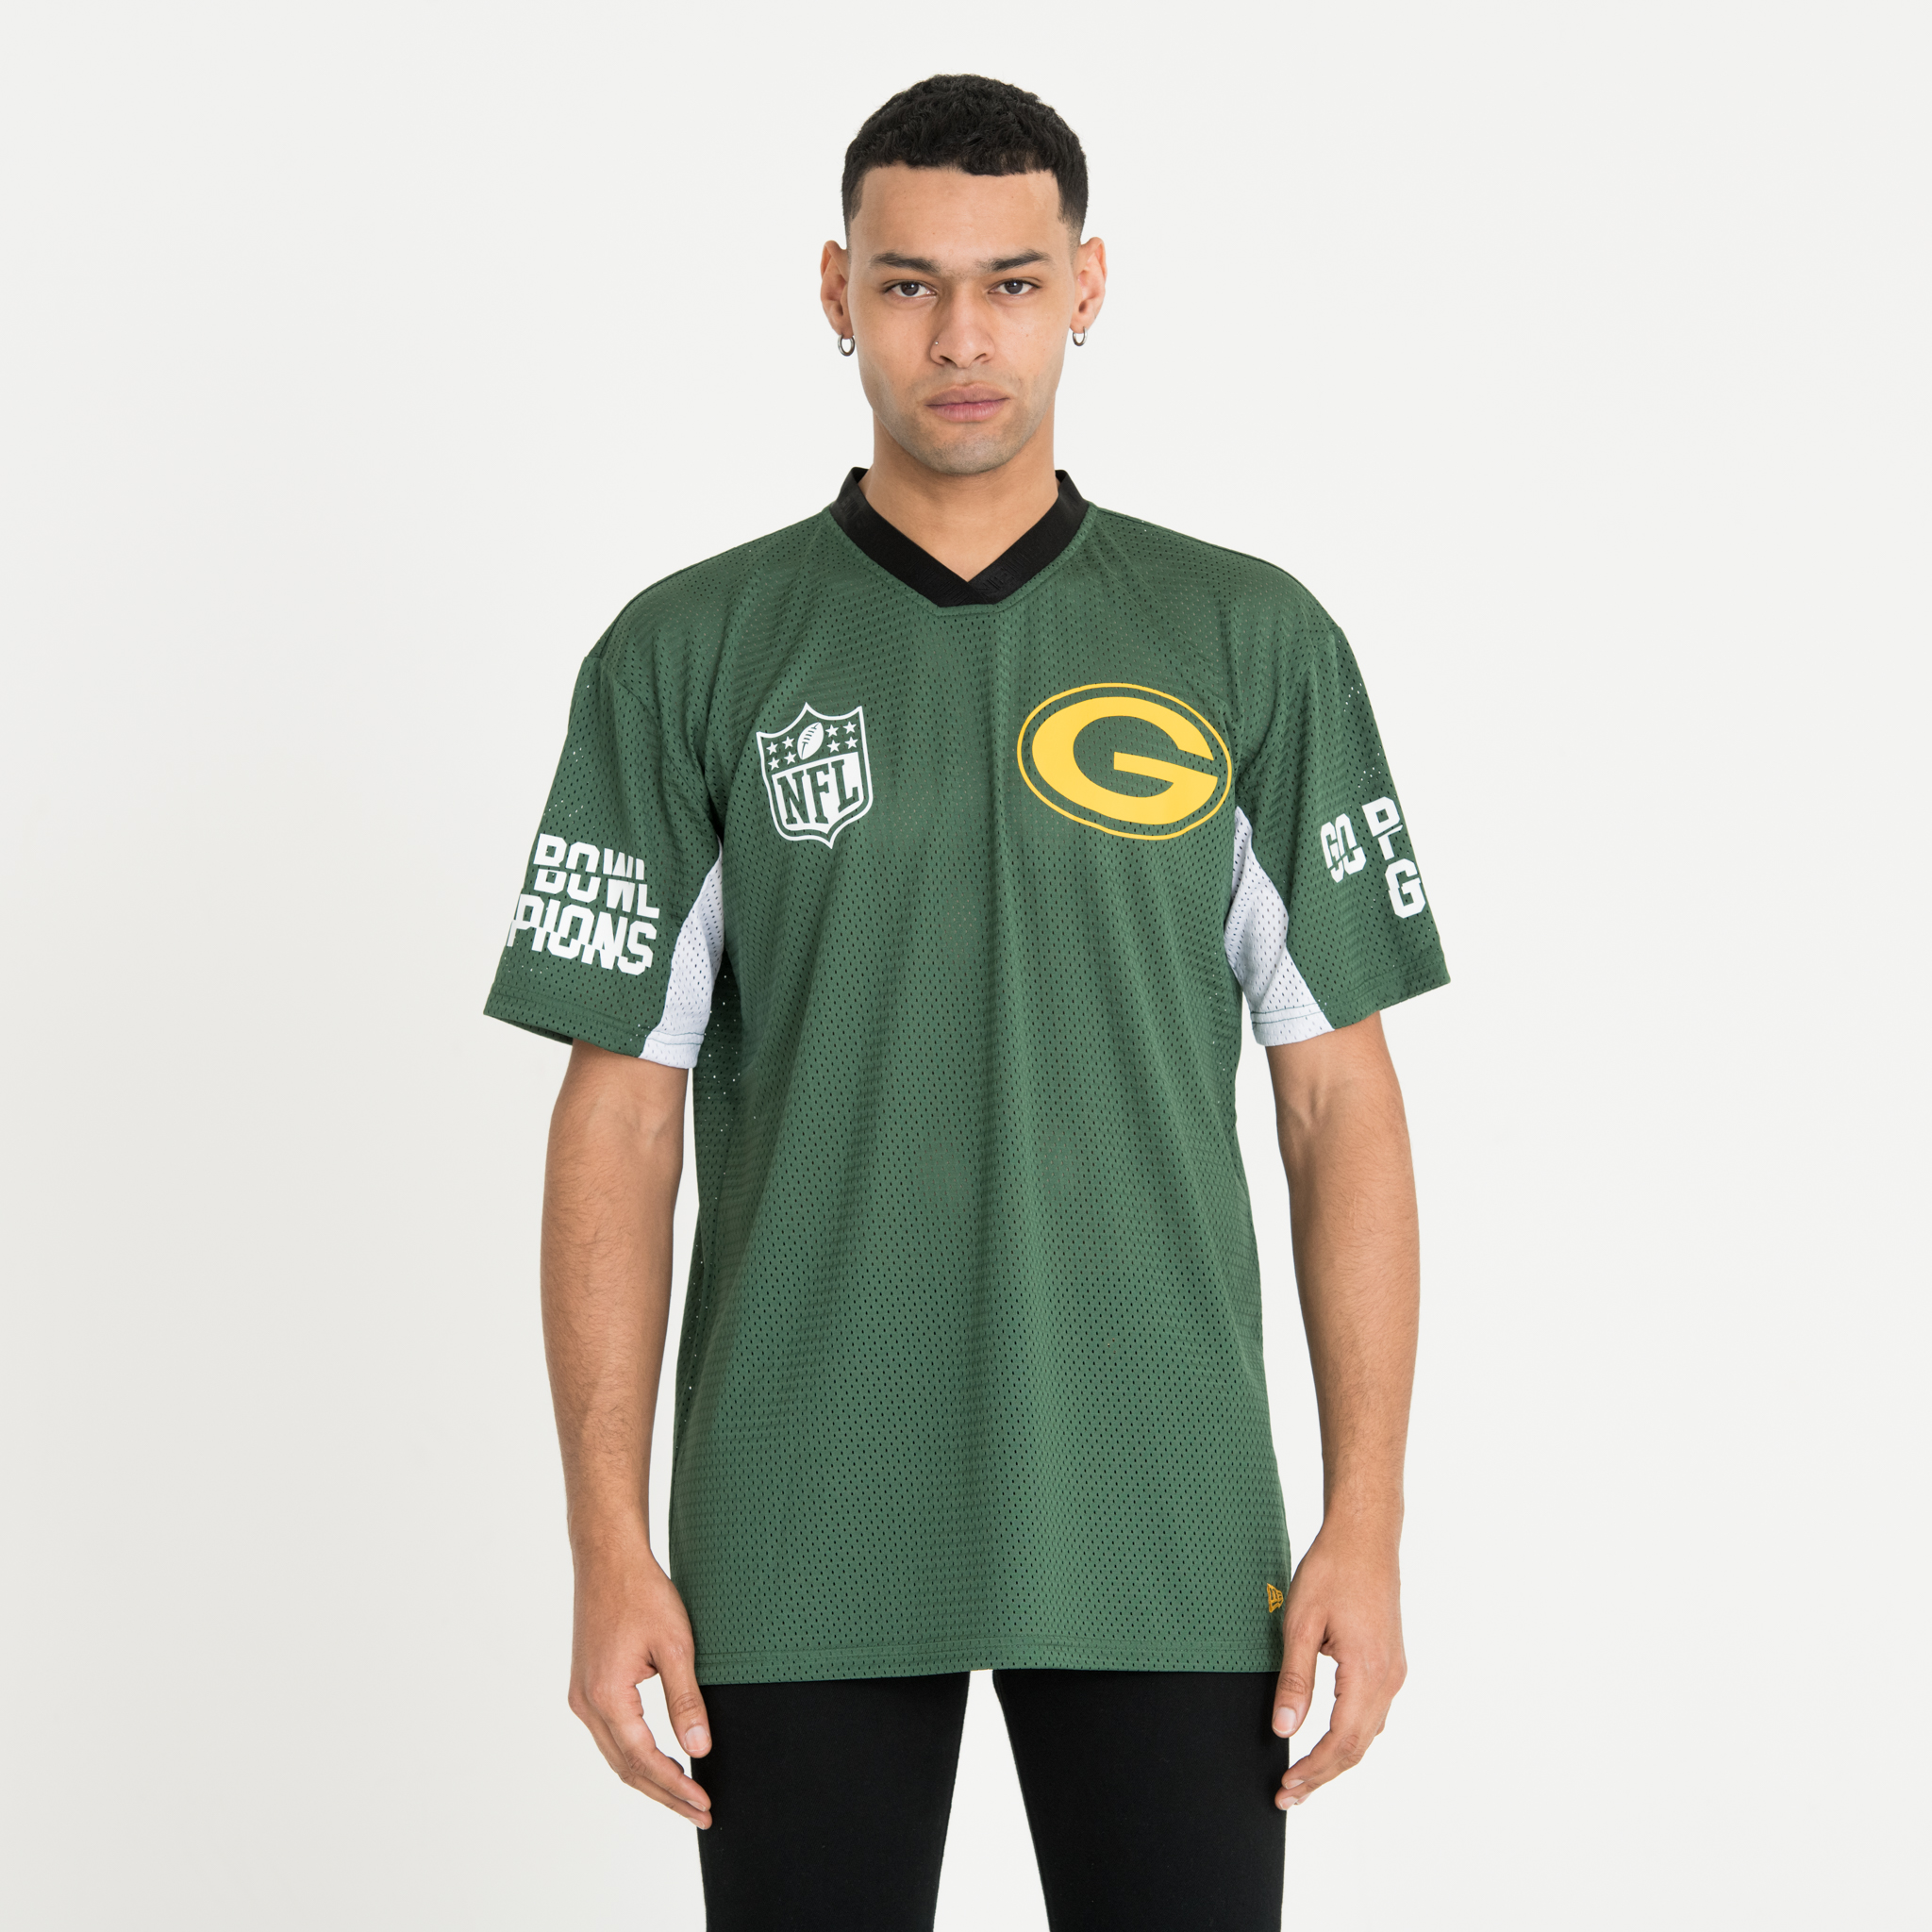 Camiseta Green Bay Packers Oversized, verde